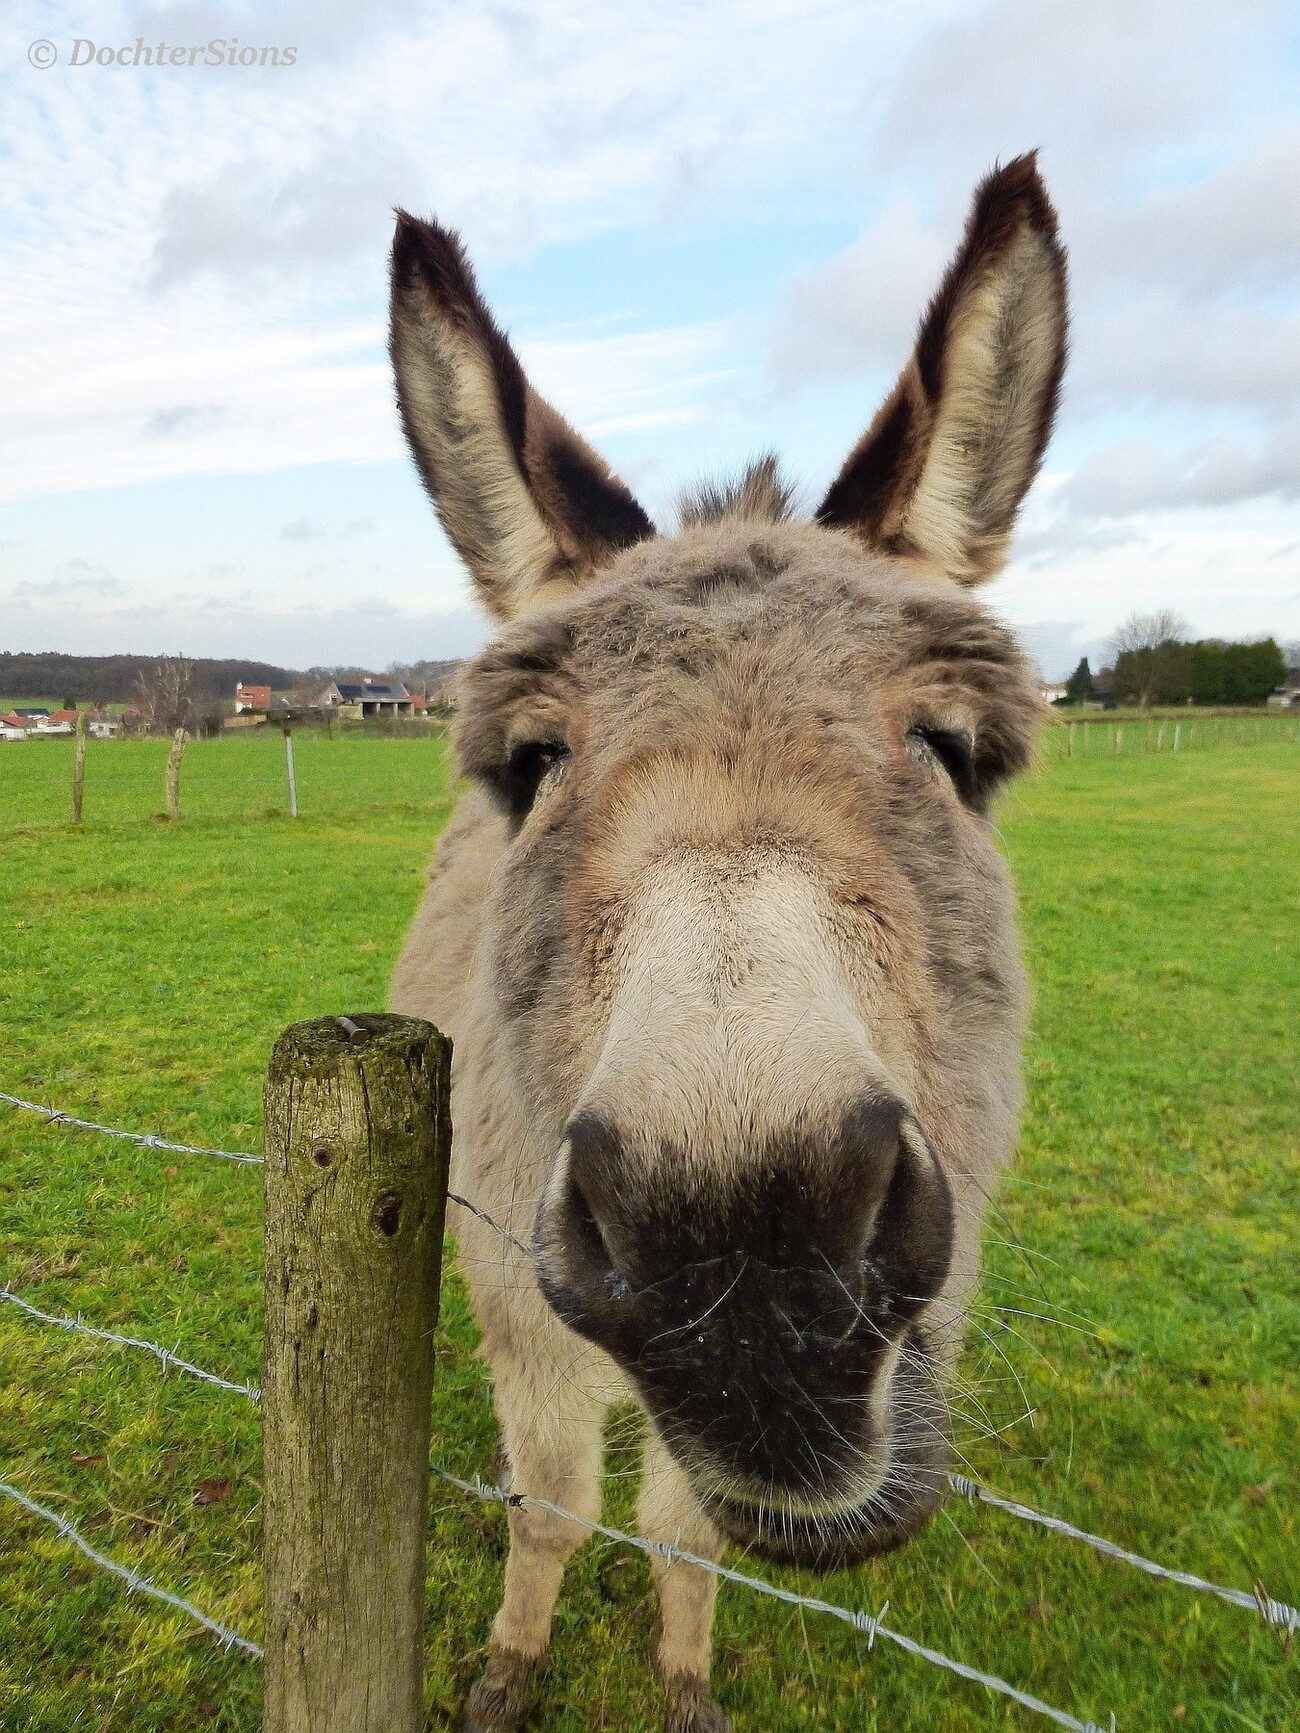 This is Iea, the donkey of Sweikhuizen ;-)